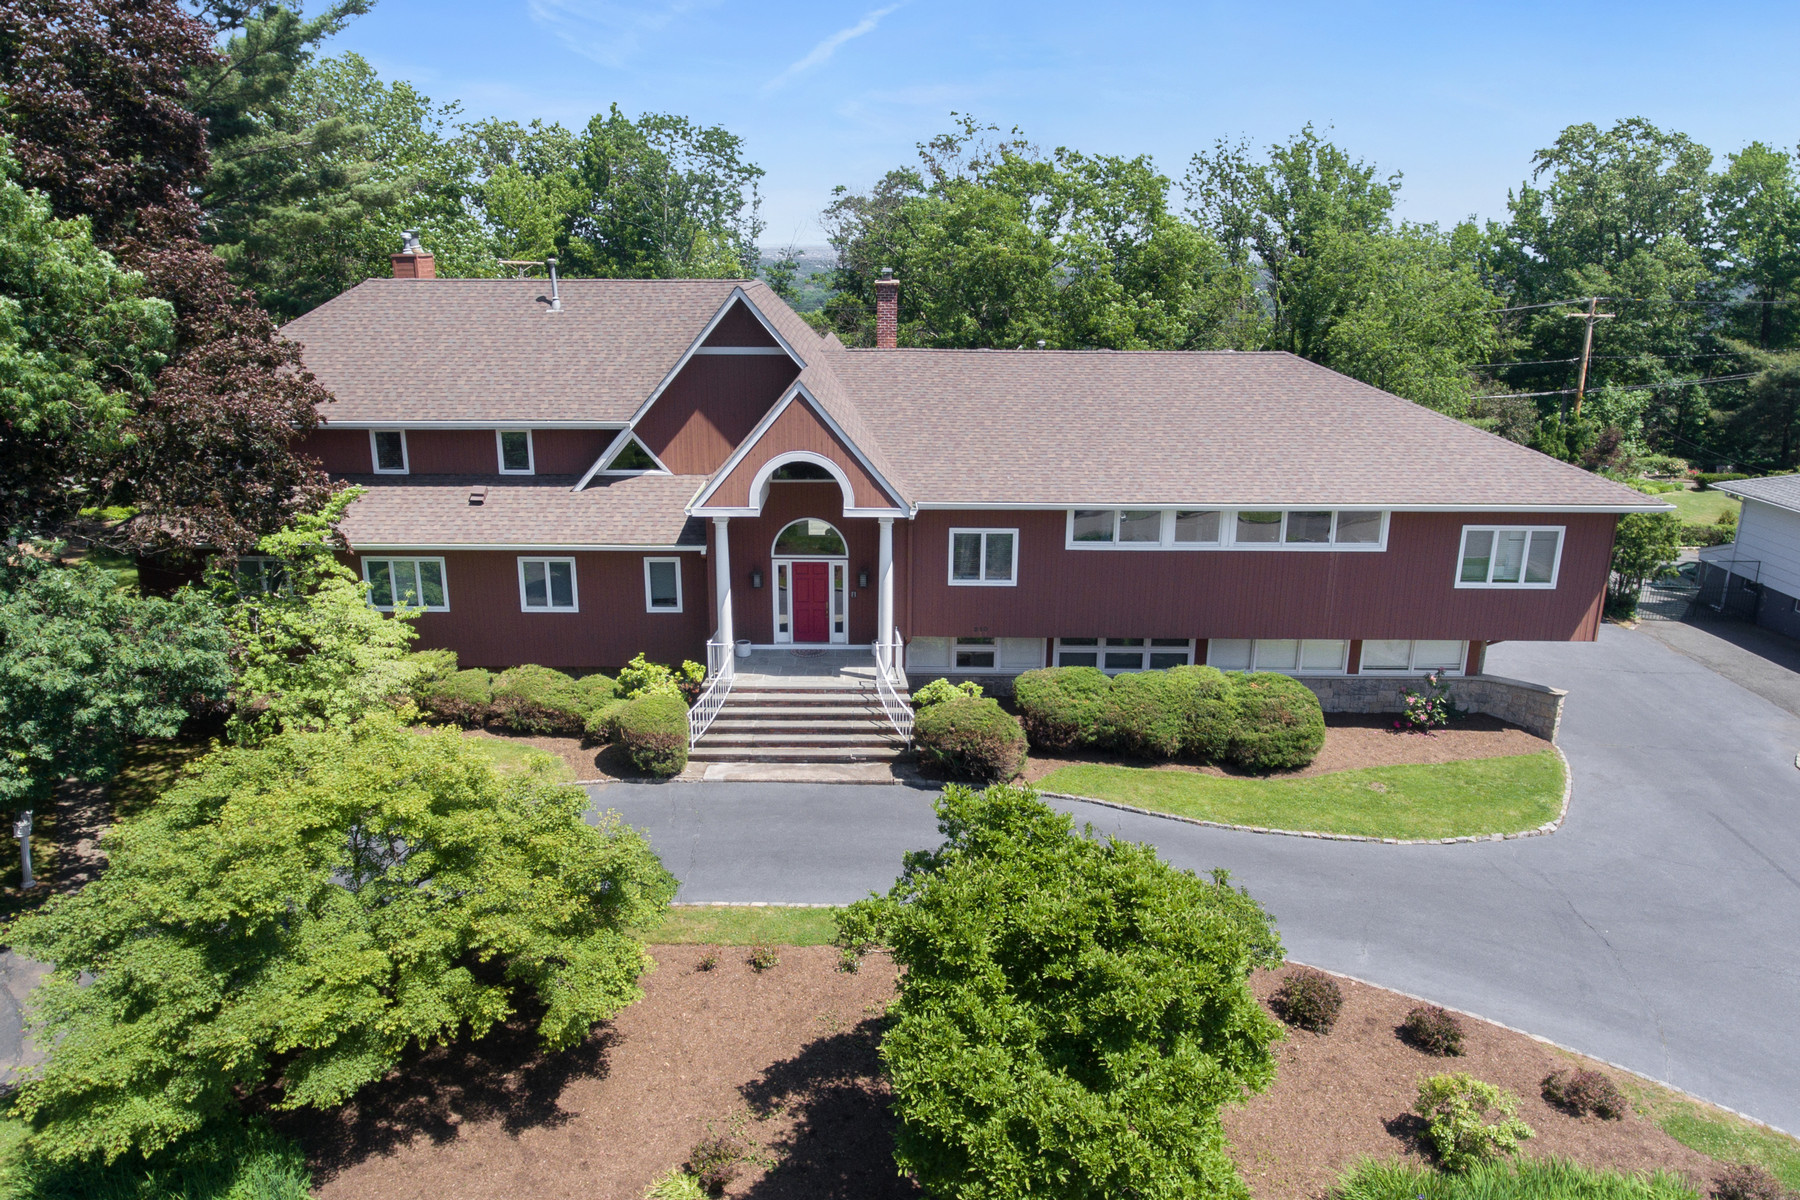 Single Family Homes for Sale at Custom Contemporary in Coveted Newstead 210 Crestwood Drive, South Orange, New Jersey 07079 United States